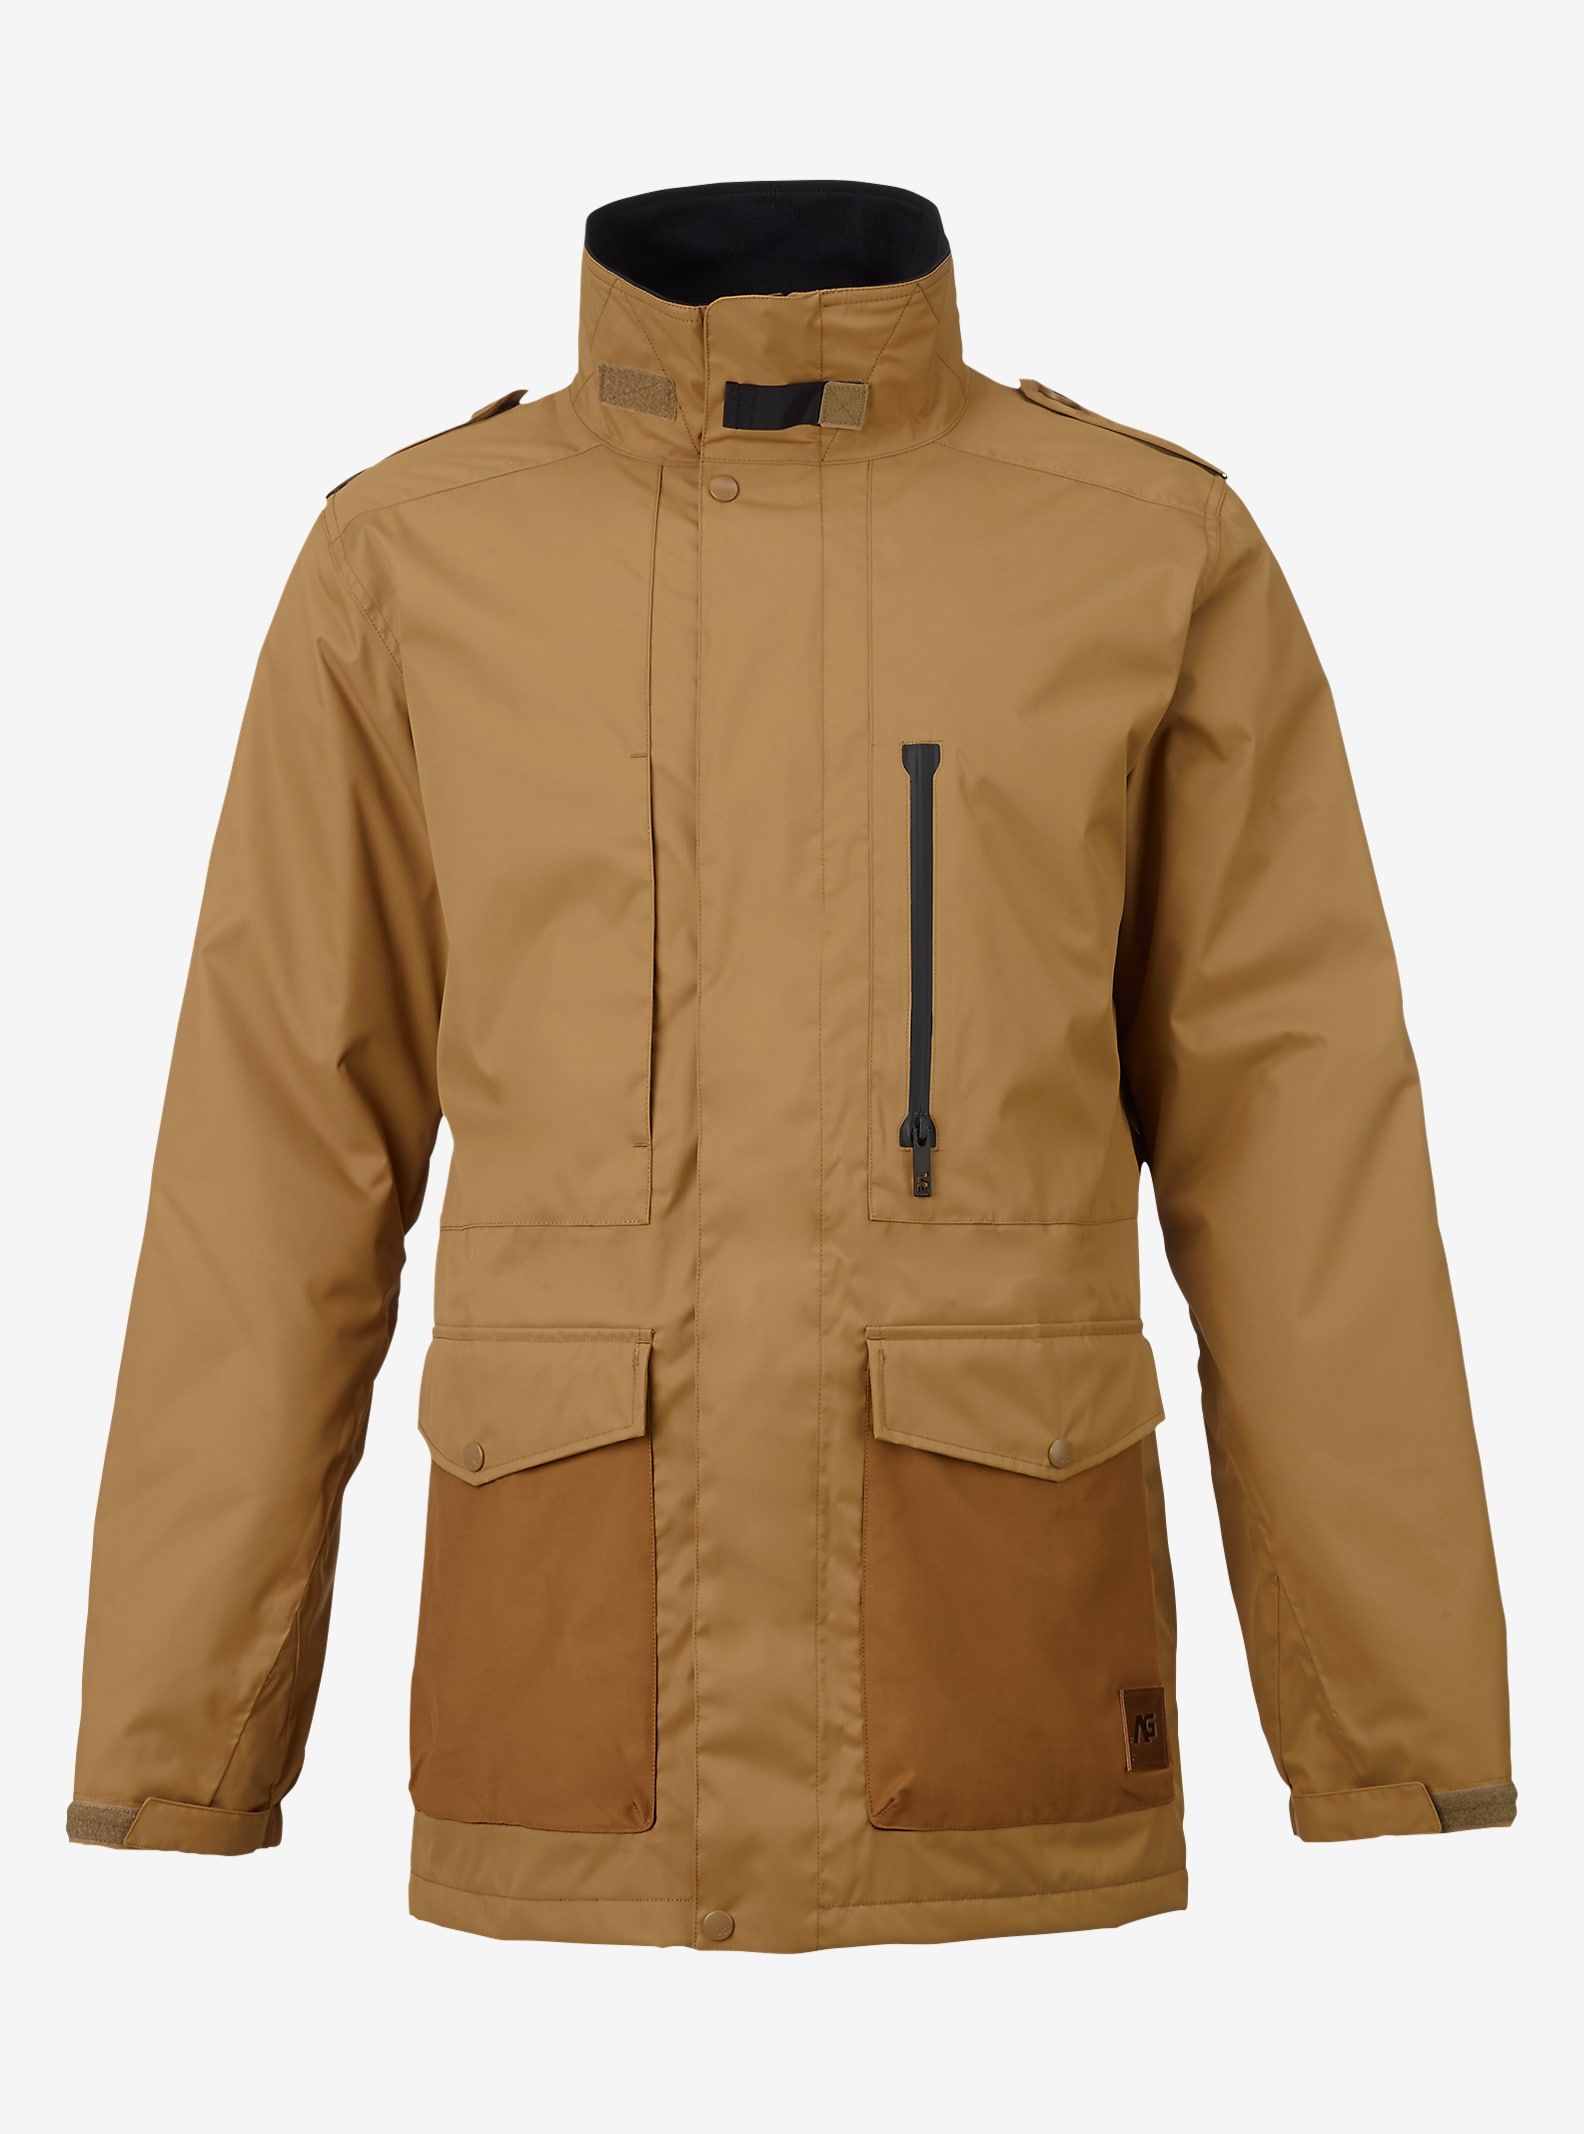 Analog Rover Jacket shown in Masonite / Copper